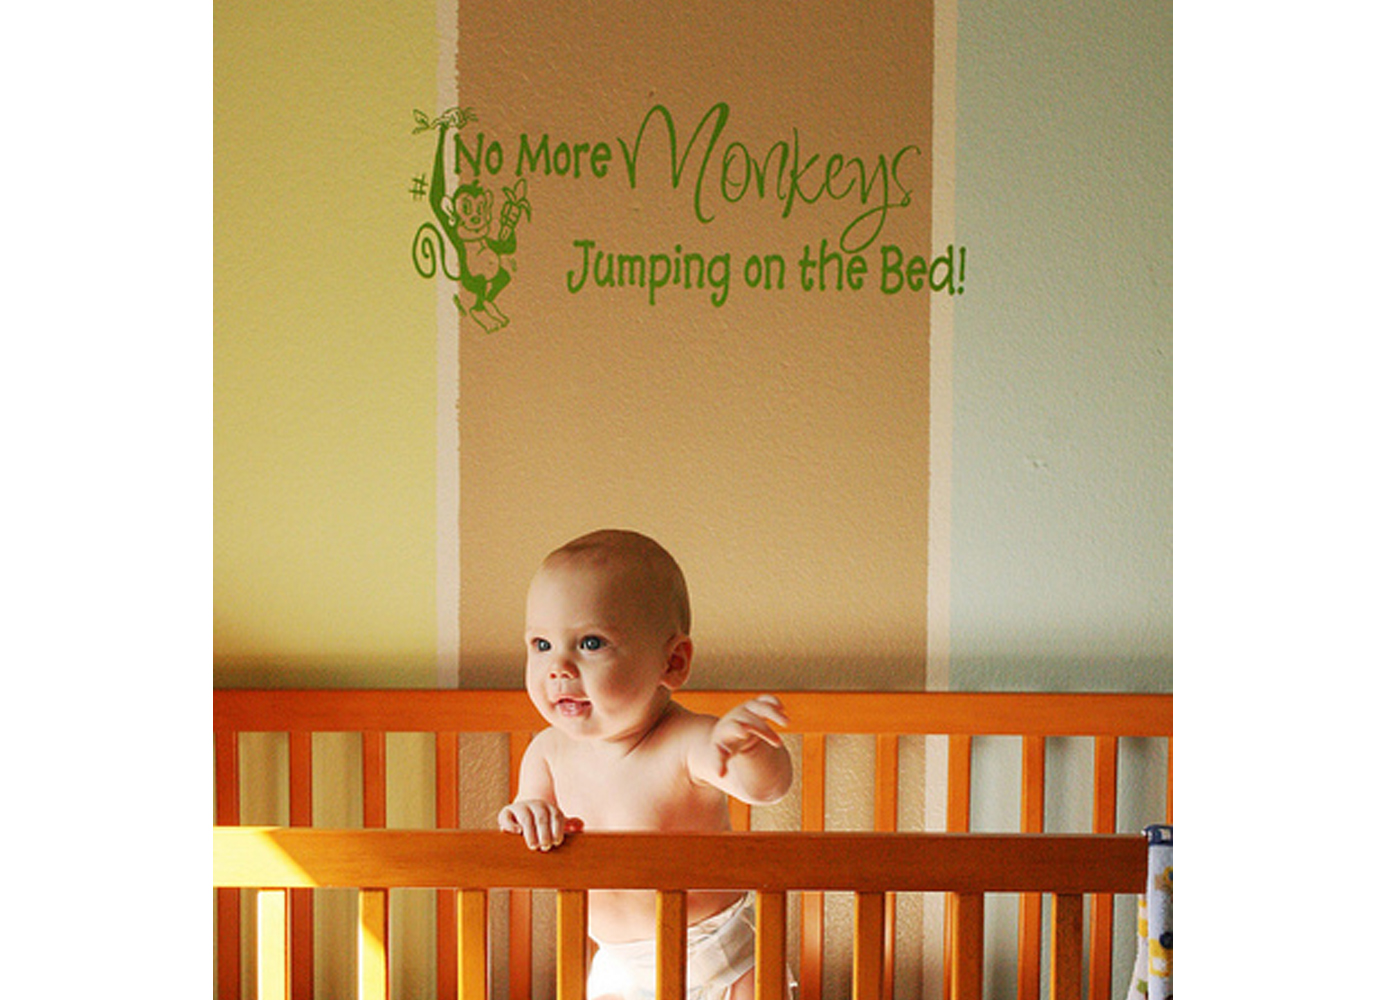 caleb-just-monkey-in-around-vinyl-wall-decal-sticker-nursery-quote.jpg